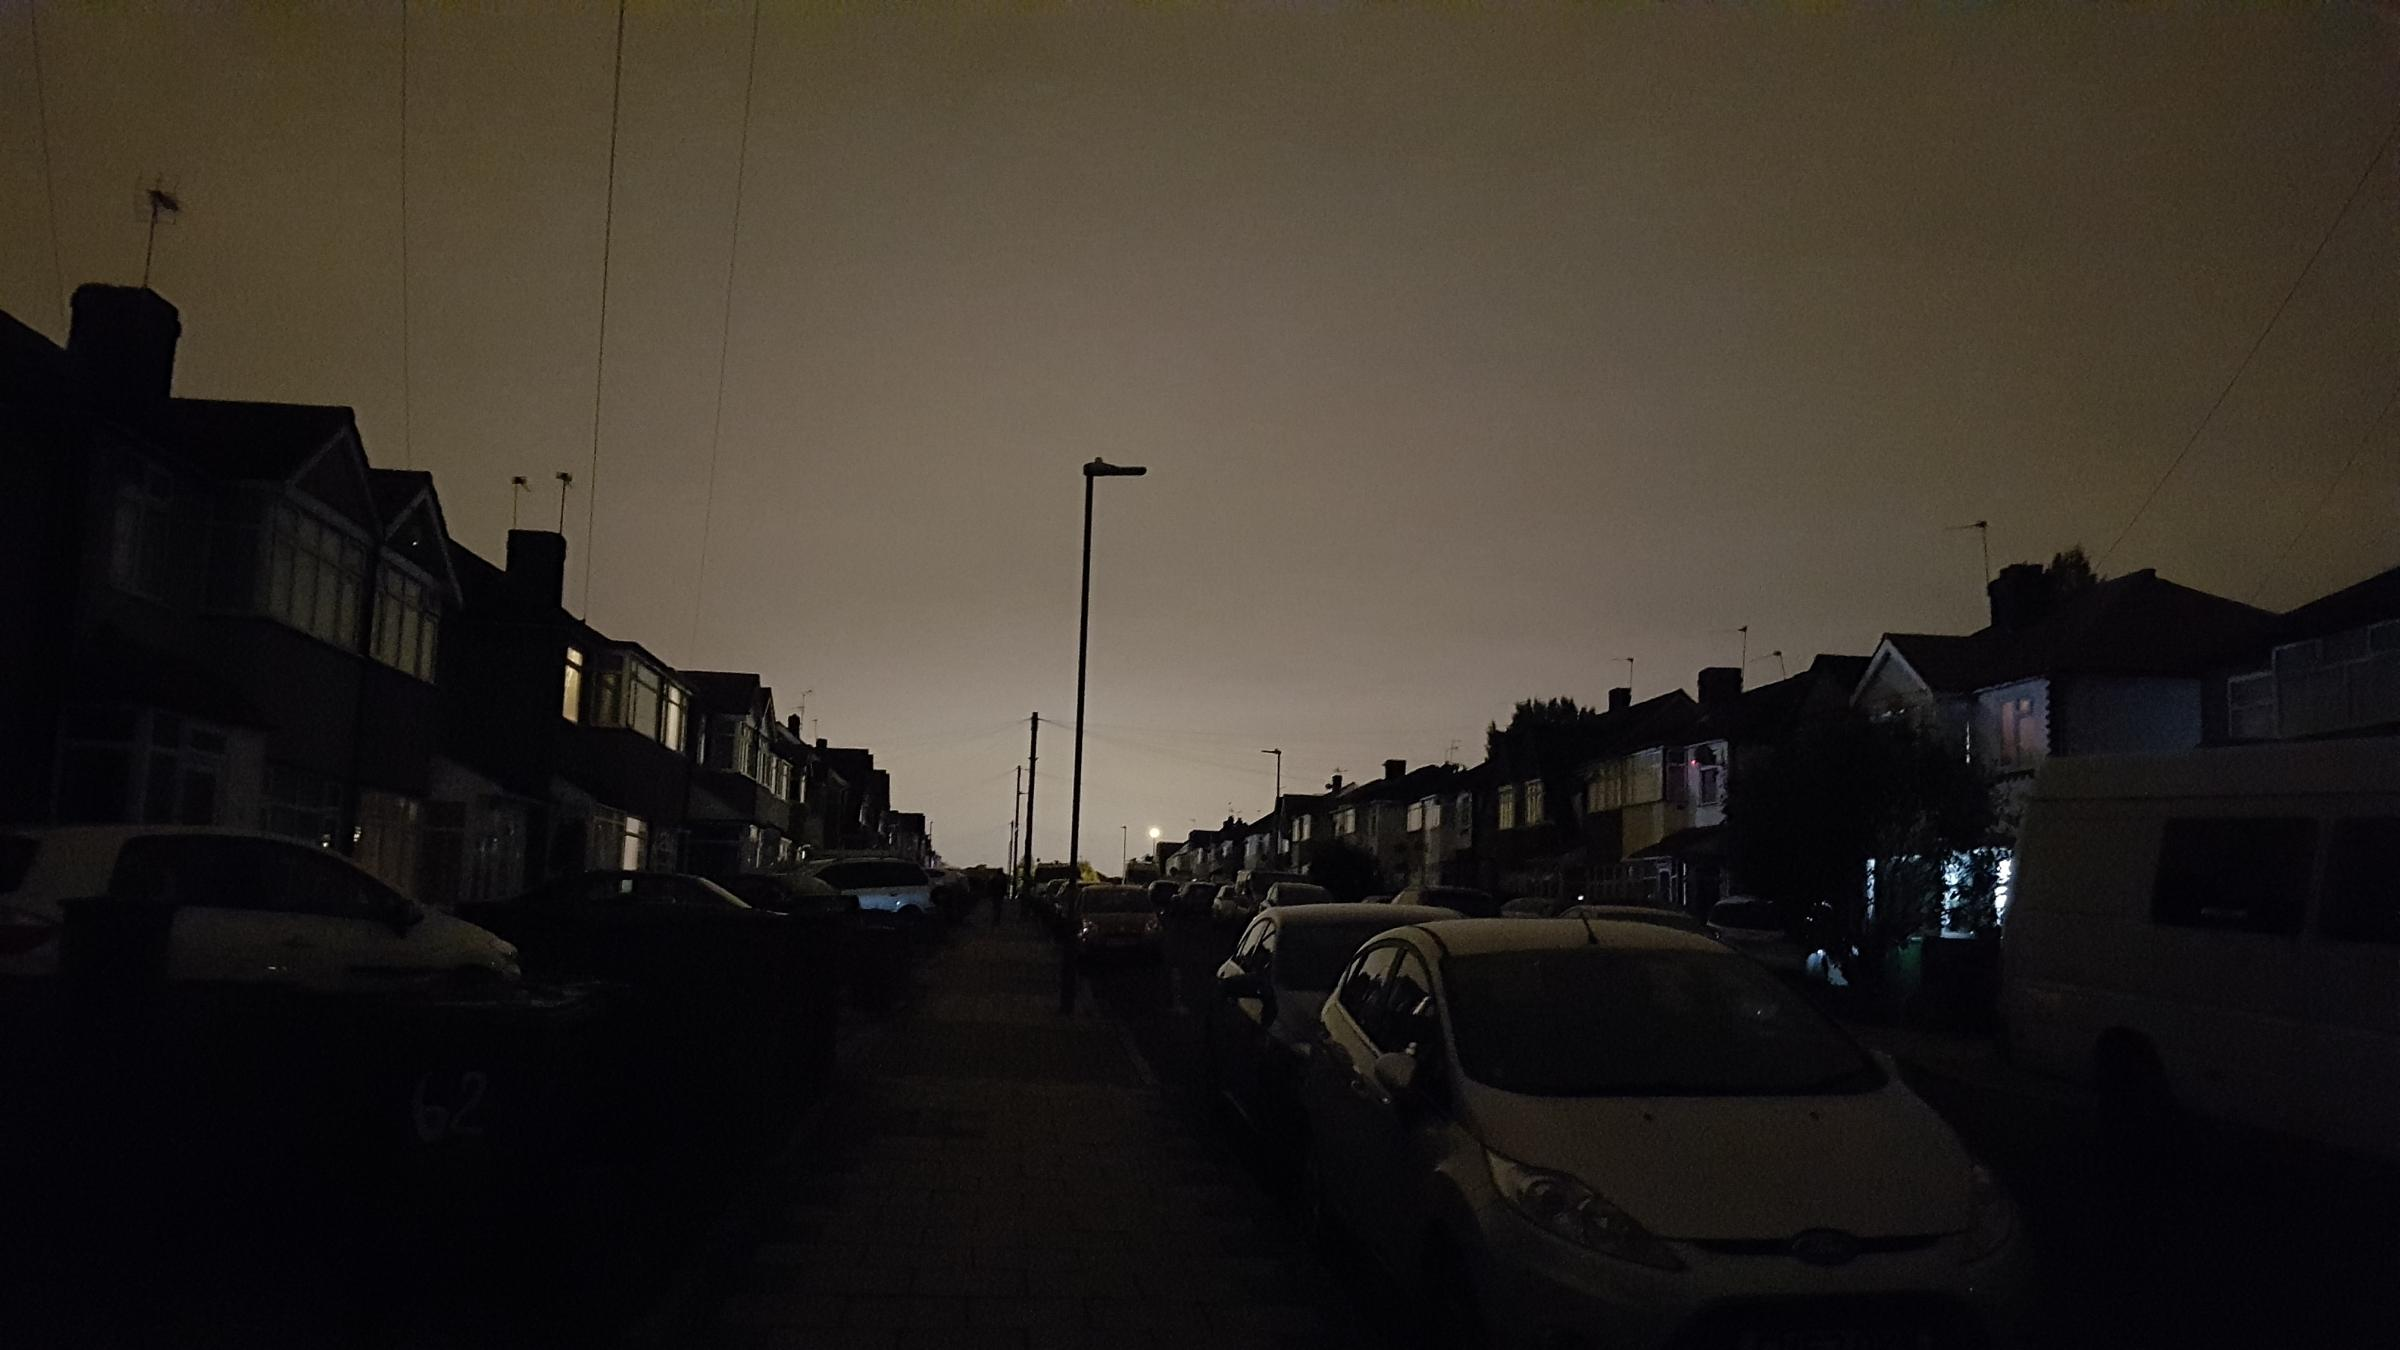 Lights out: faulty streetlamps leave frustrated residents anxious